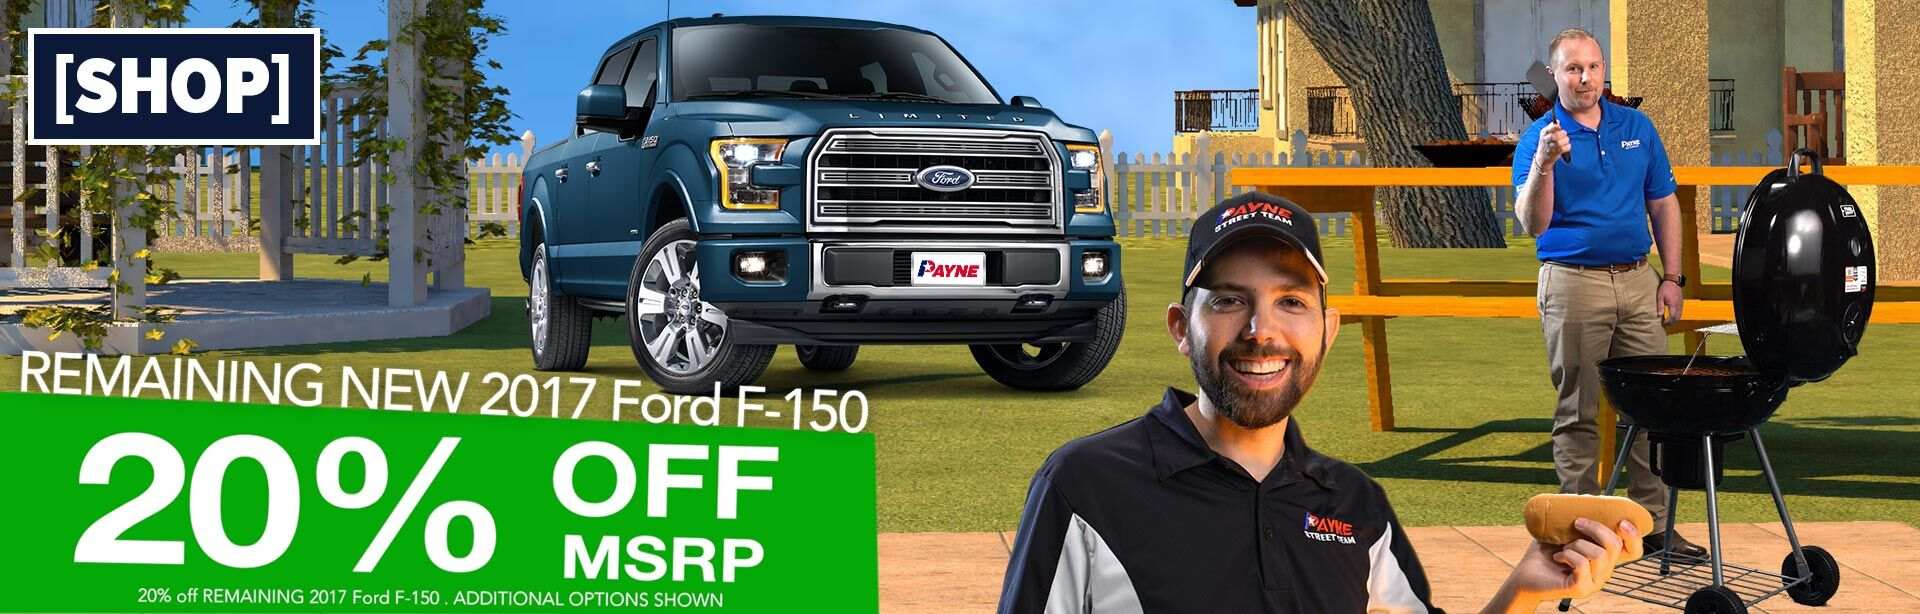 20% Off Ford F-150